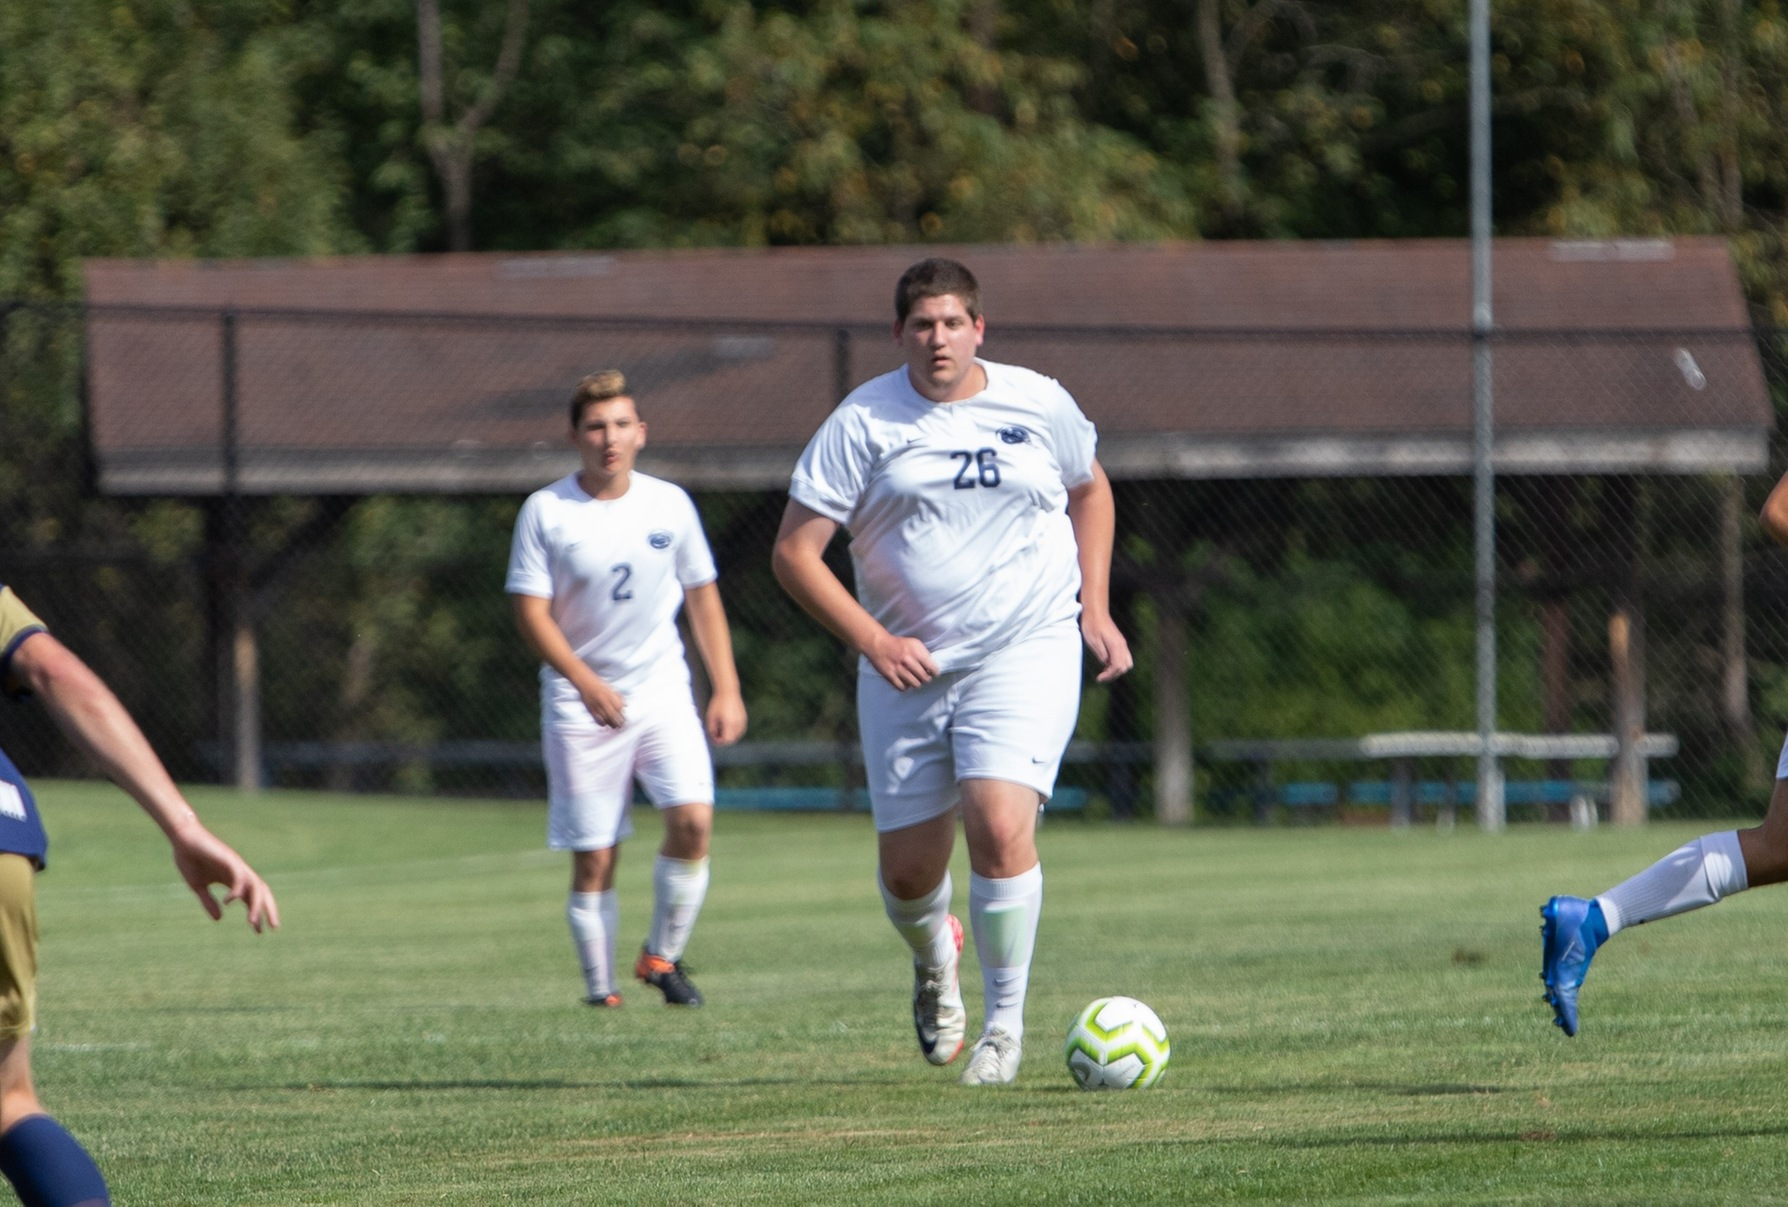 Men's Soccer Takes Down York 5-0